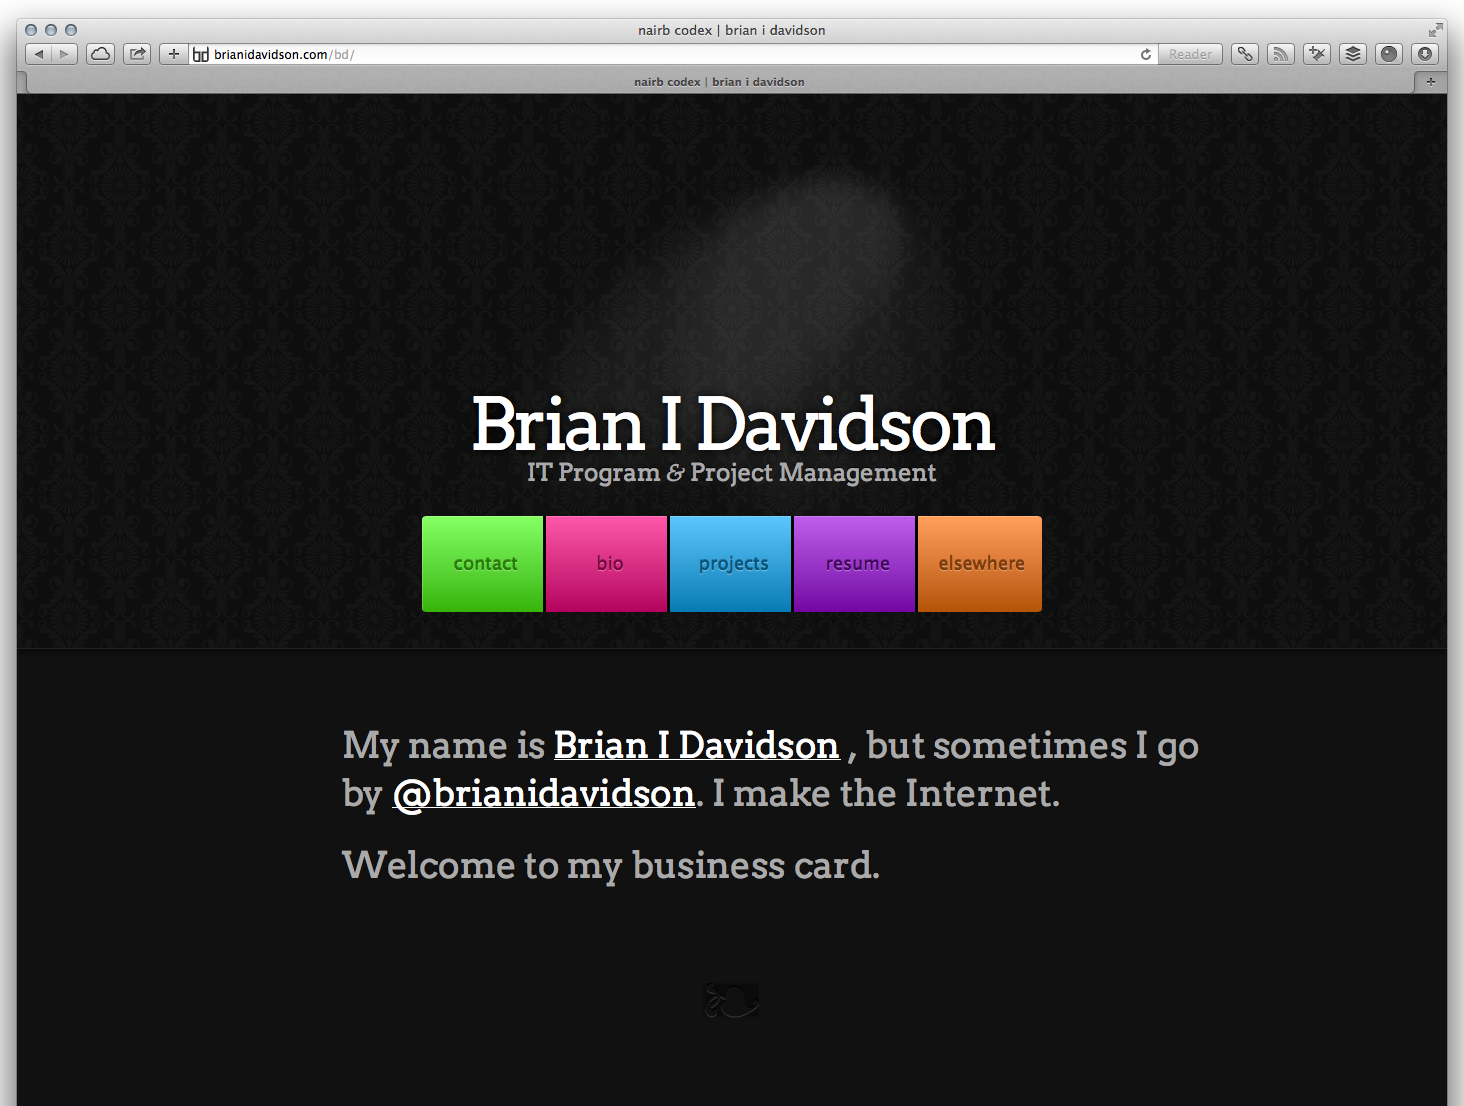 Brian I Davidson stole my website